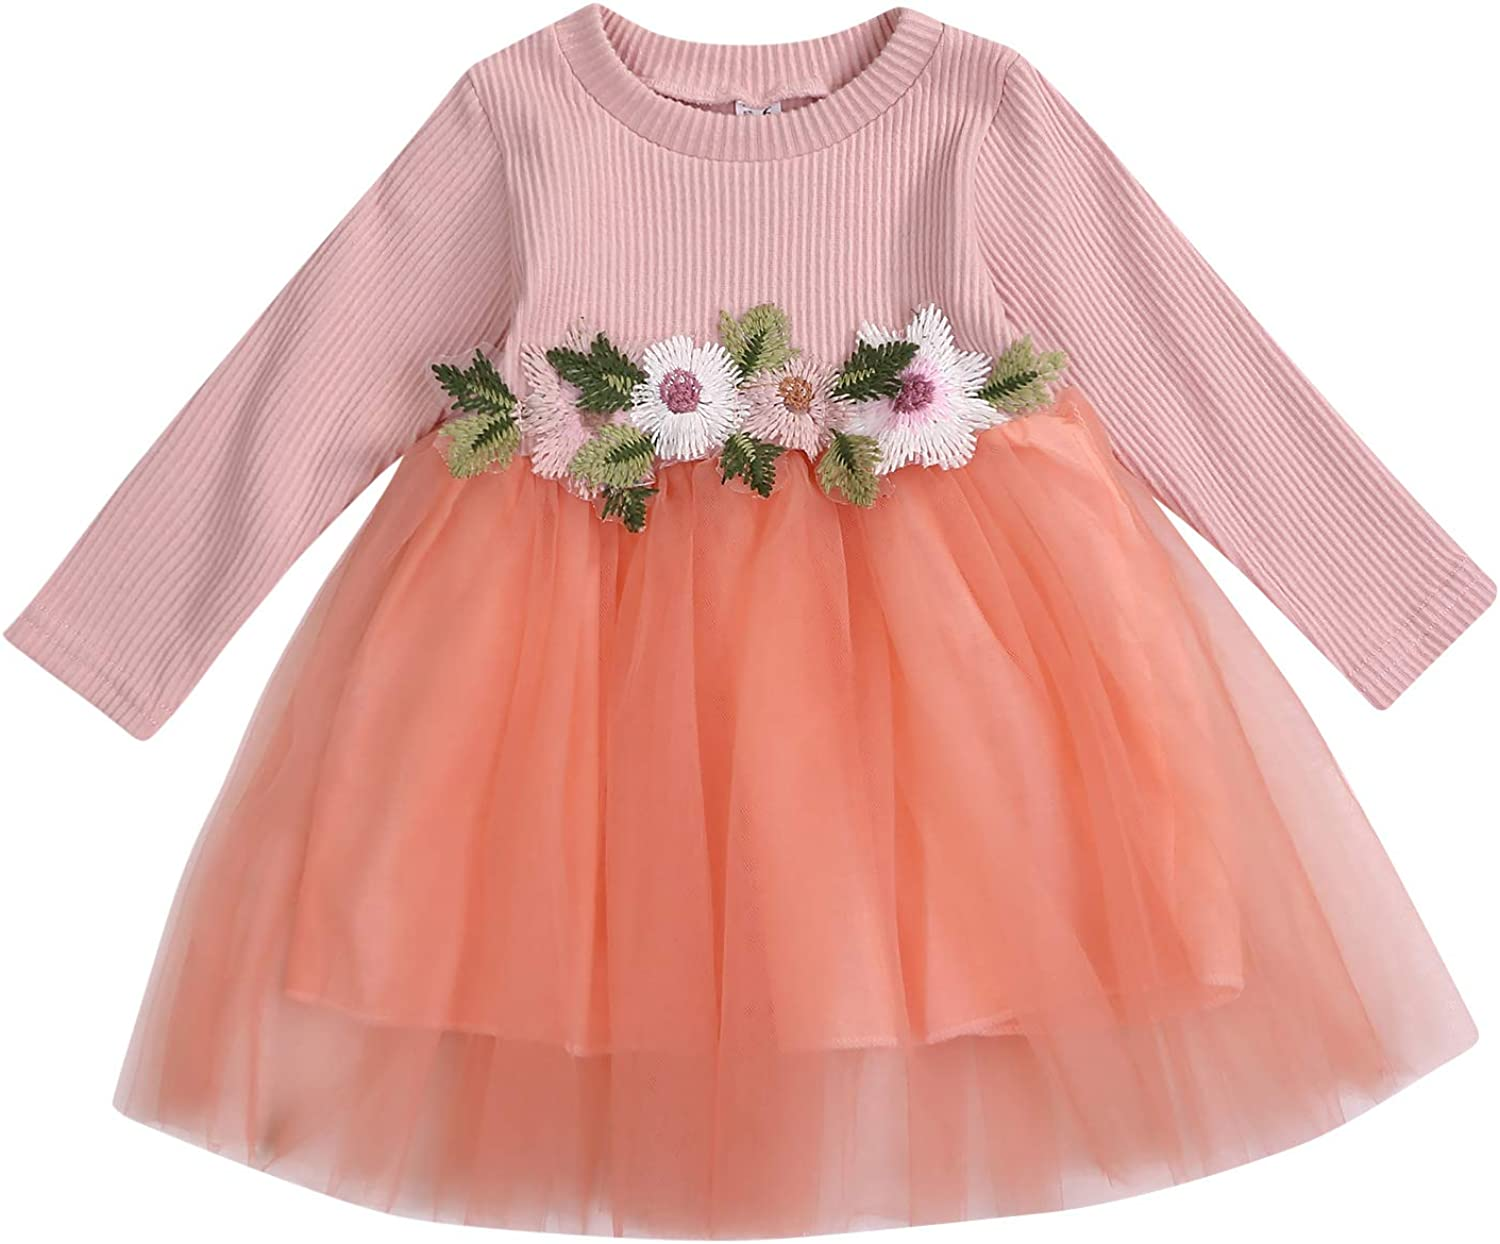 Toddler Baby Girls Party Dress Knitting Tulle Cap Lace Princess Tutu Wedding Skirt Outfit